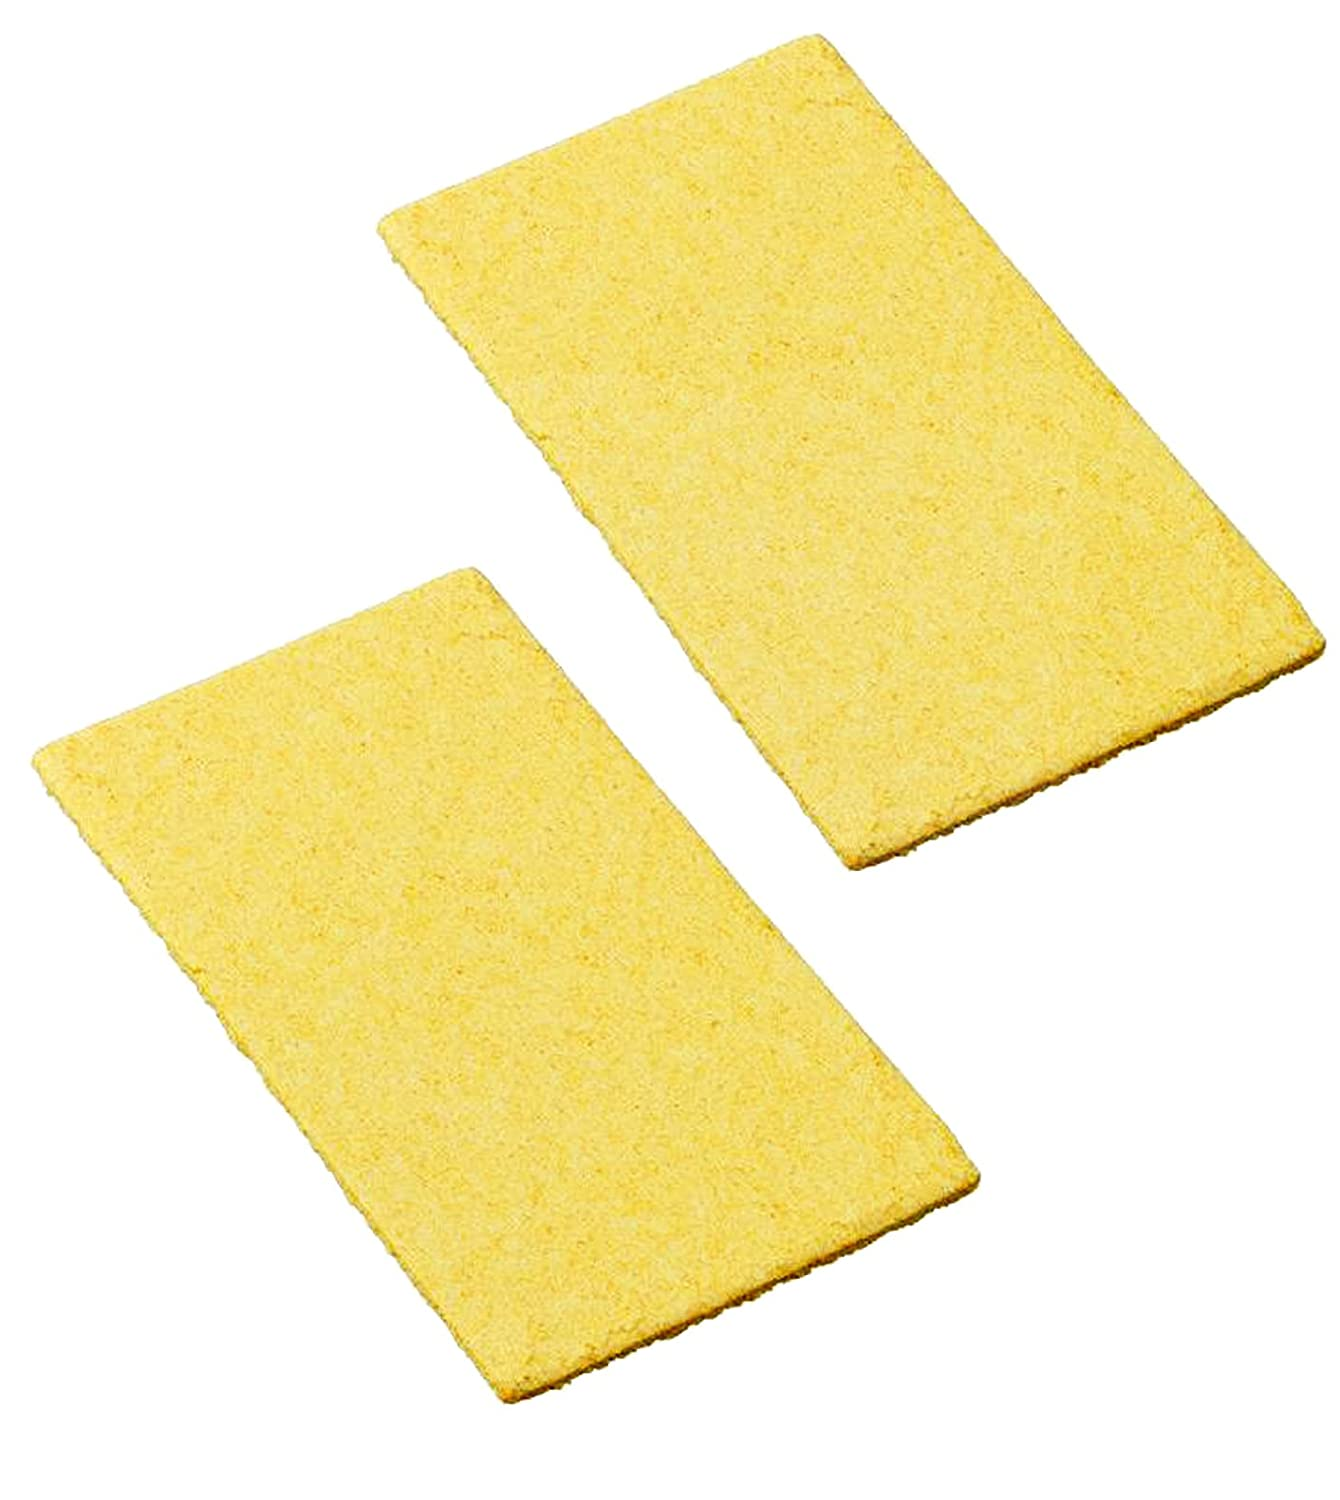 Weller WCC104 PACK OF 2 Solder Tip Cleaning Sponge for WLC100 WLC200 4.00 L x 2.25 W 101.6mm x 57.2mm